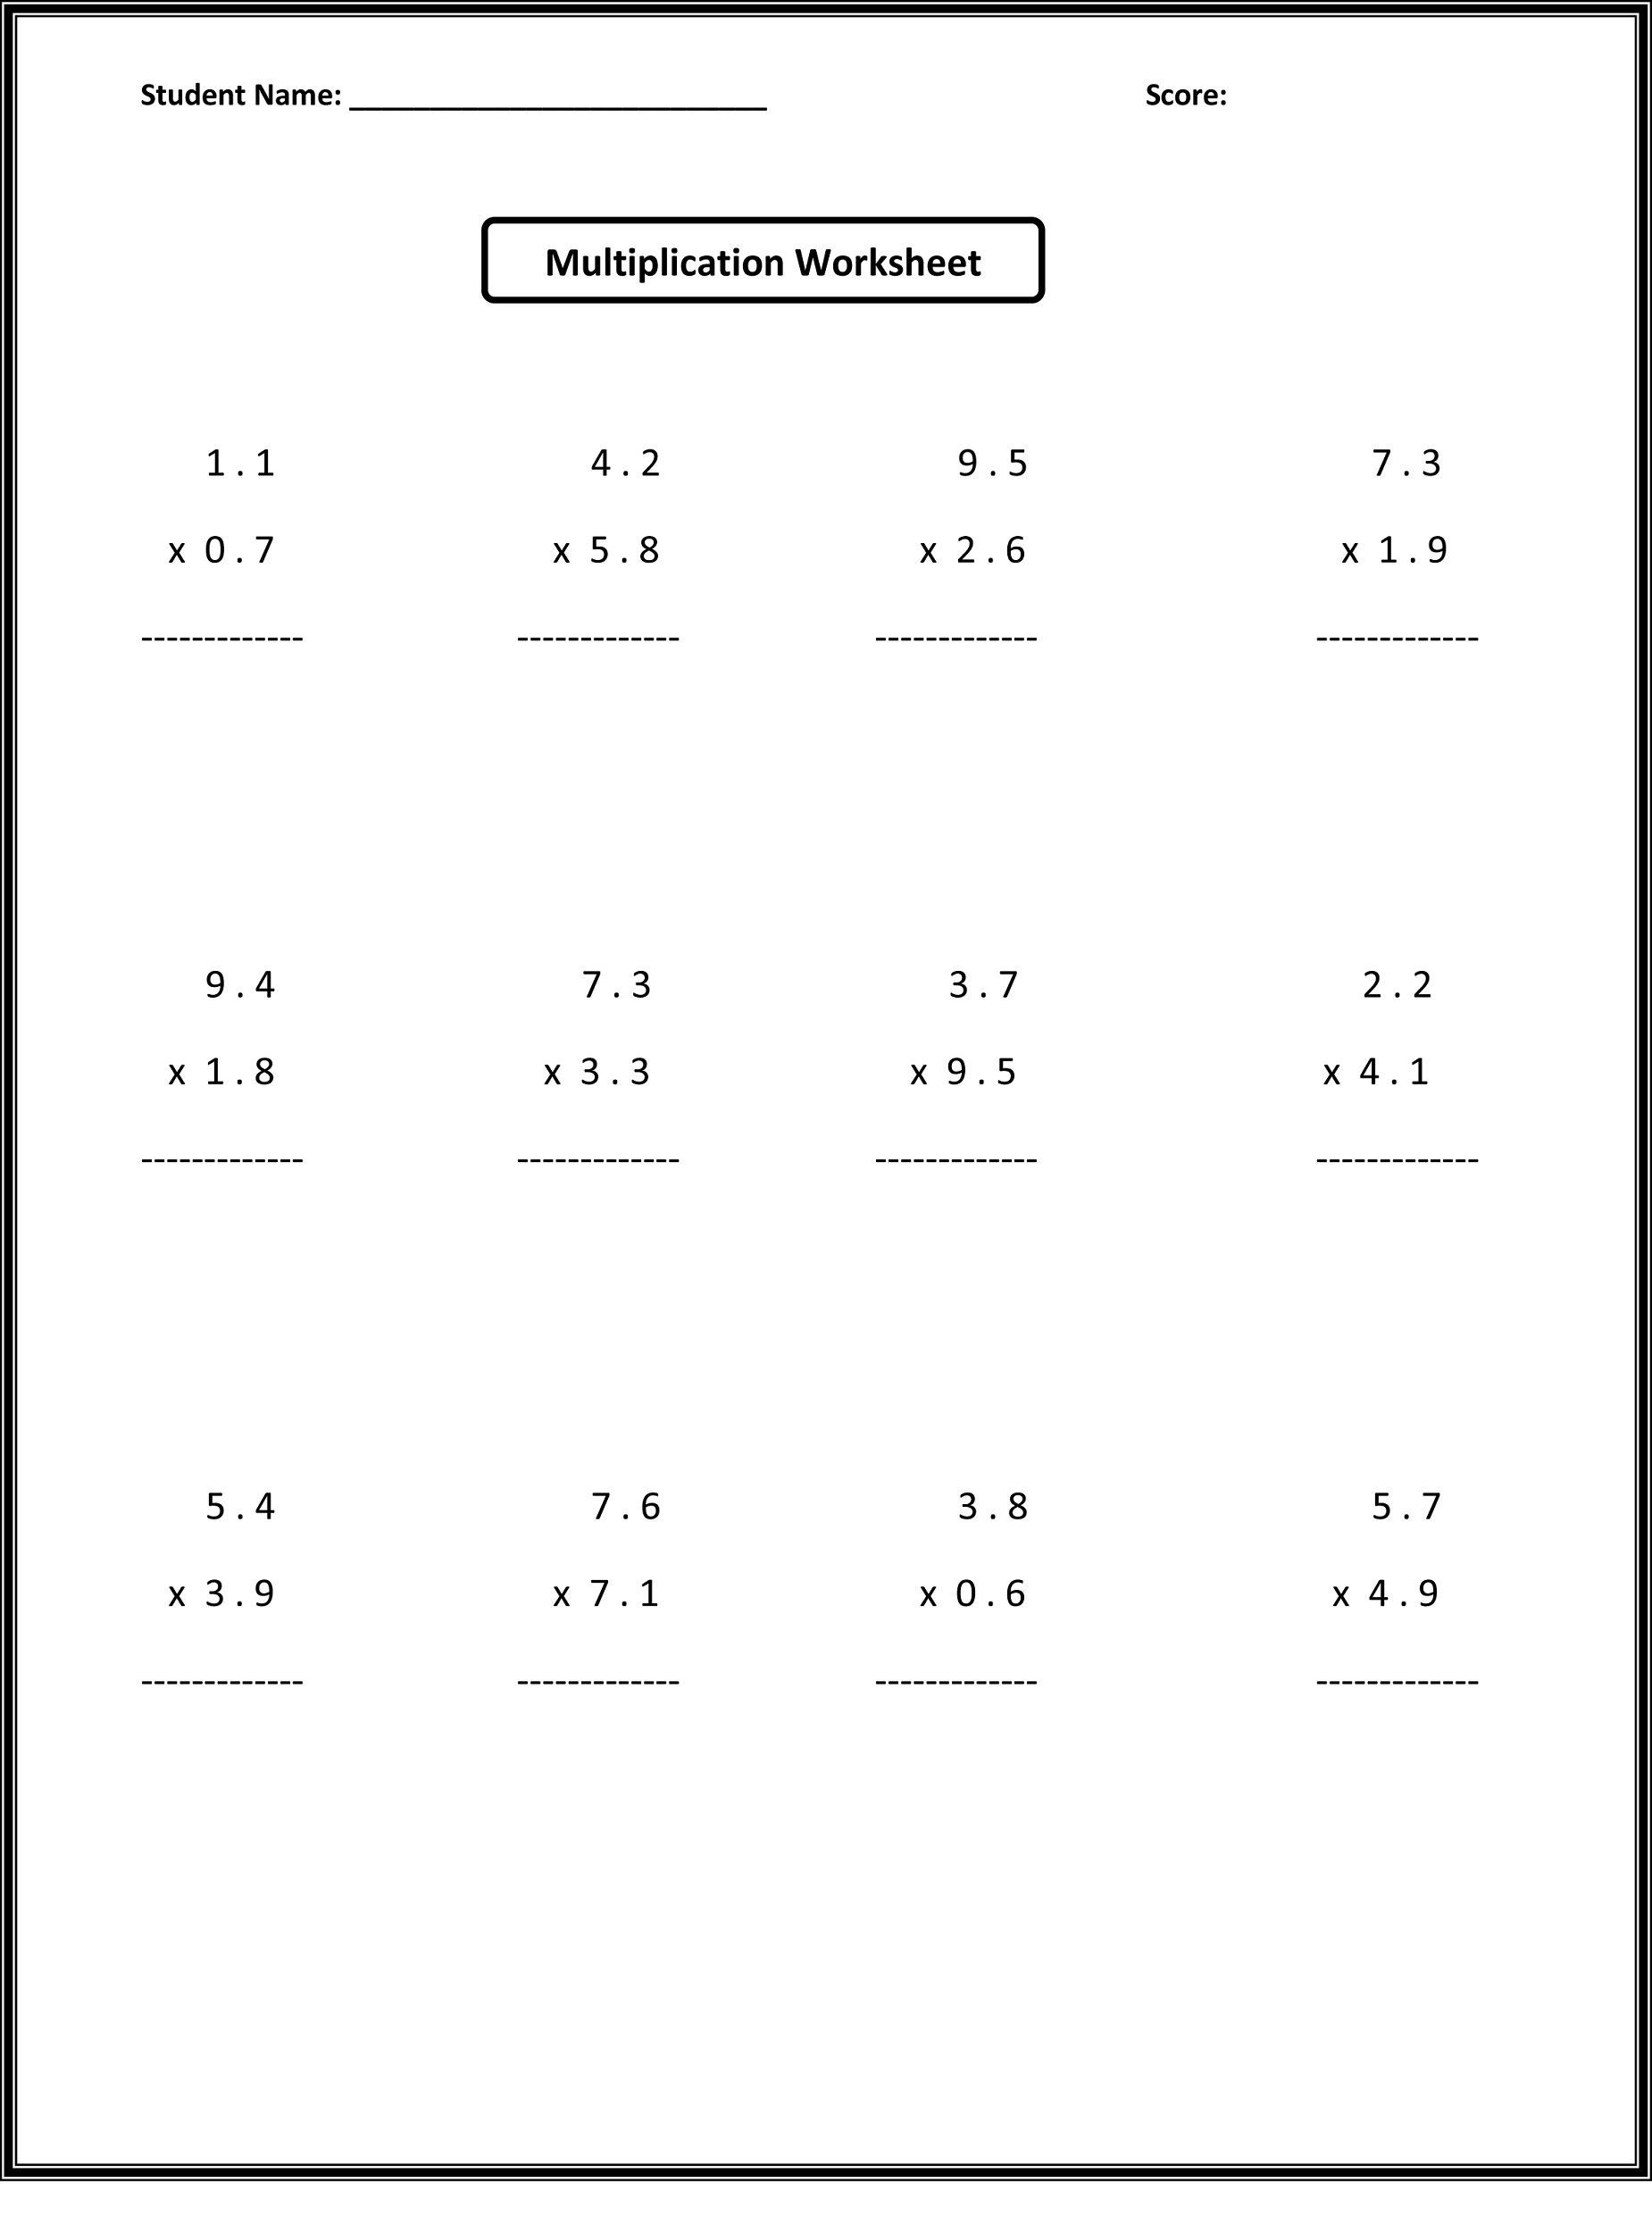 Free 6th Grade Math Worksheets | Activity Shelter